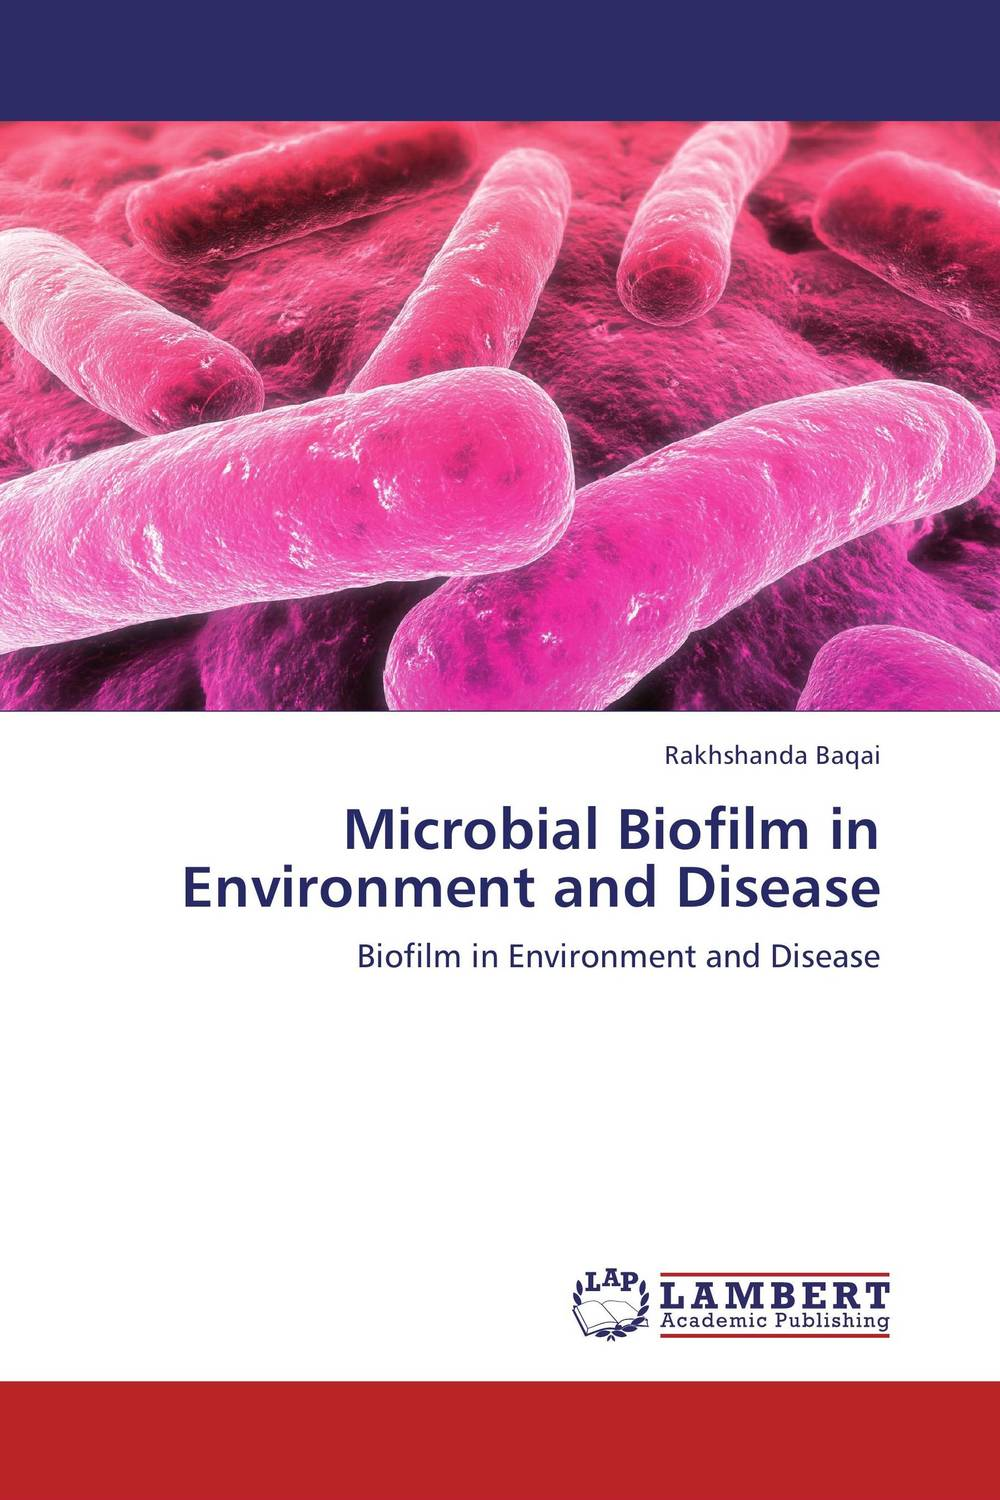 Microbial Biofilm in Environment and Disease surveillance of surgical site infection in tertiary hospital